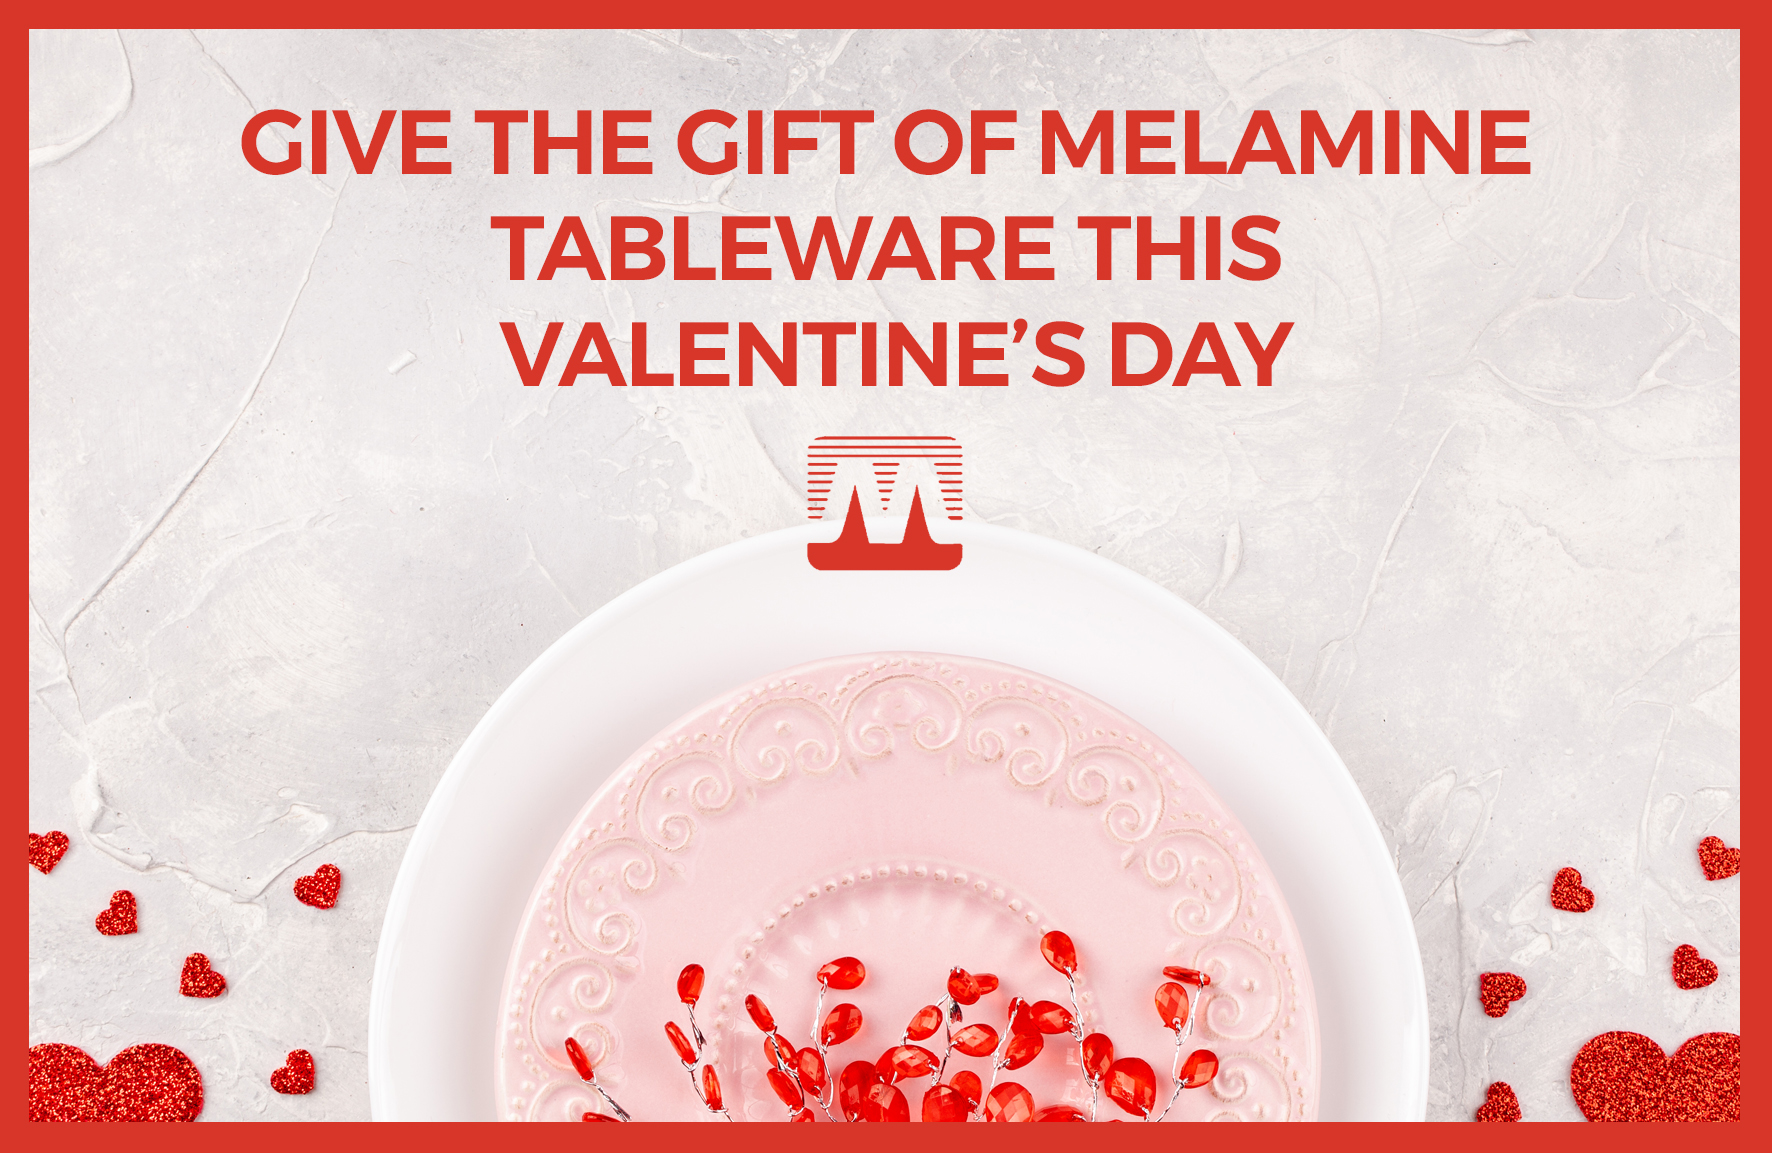 Pink and red colour theme melmamine tableware dinner setting. Pink plate with red love hearts. Bold red title text for feature image.